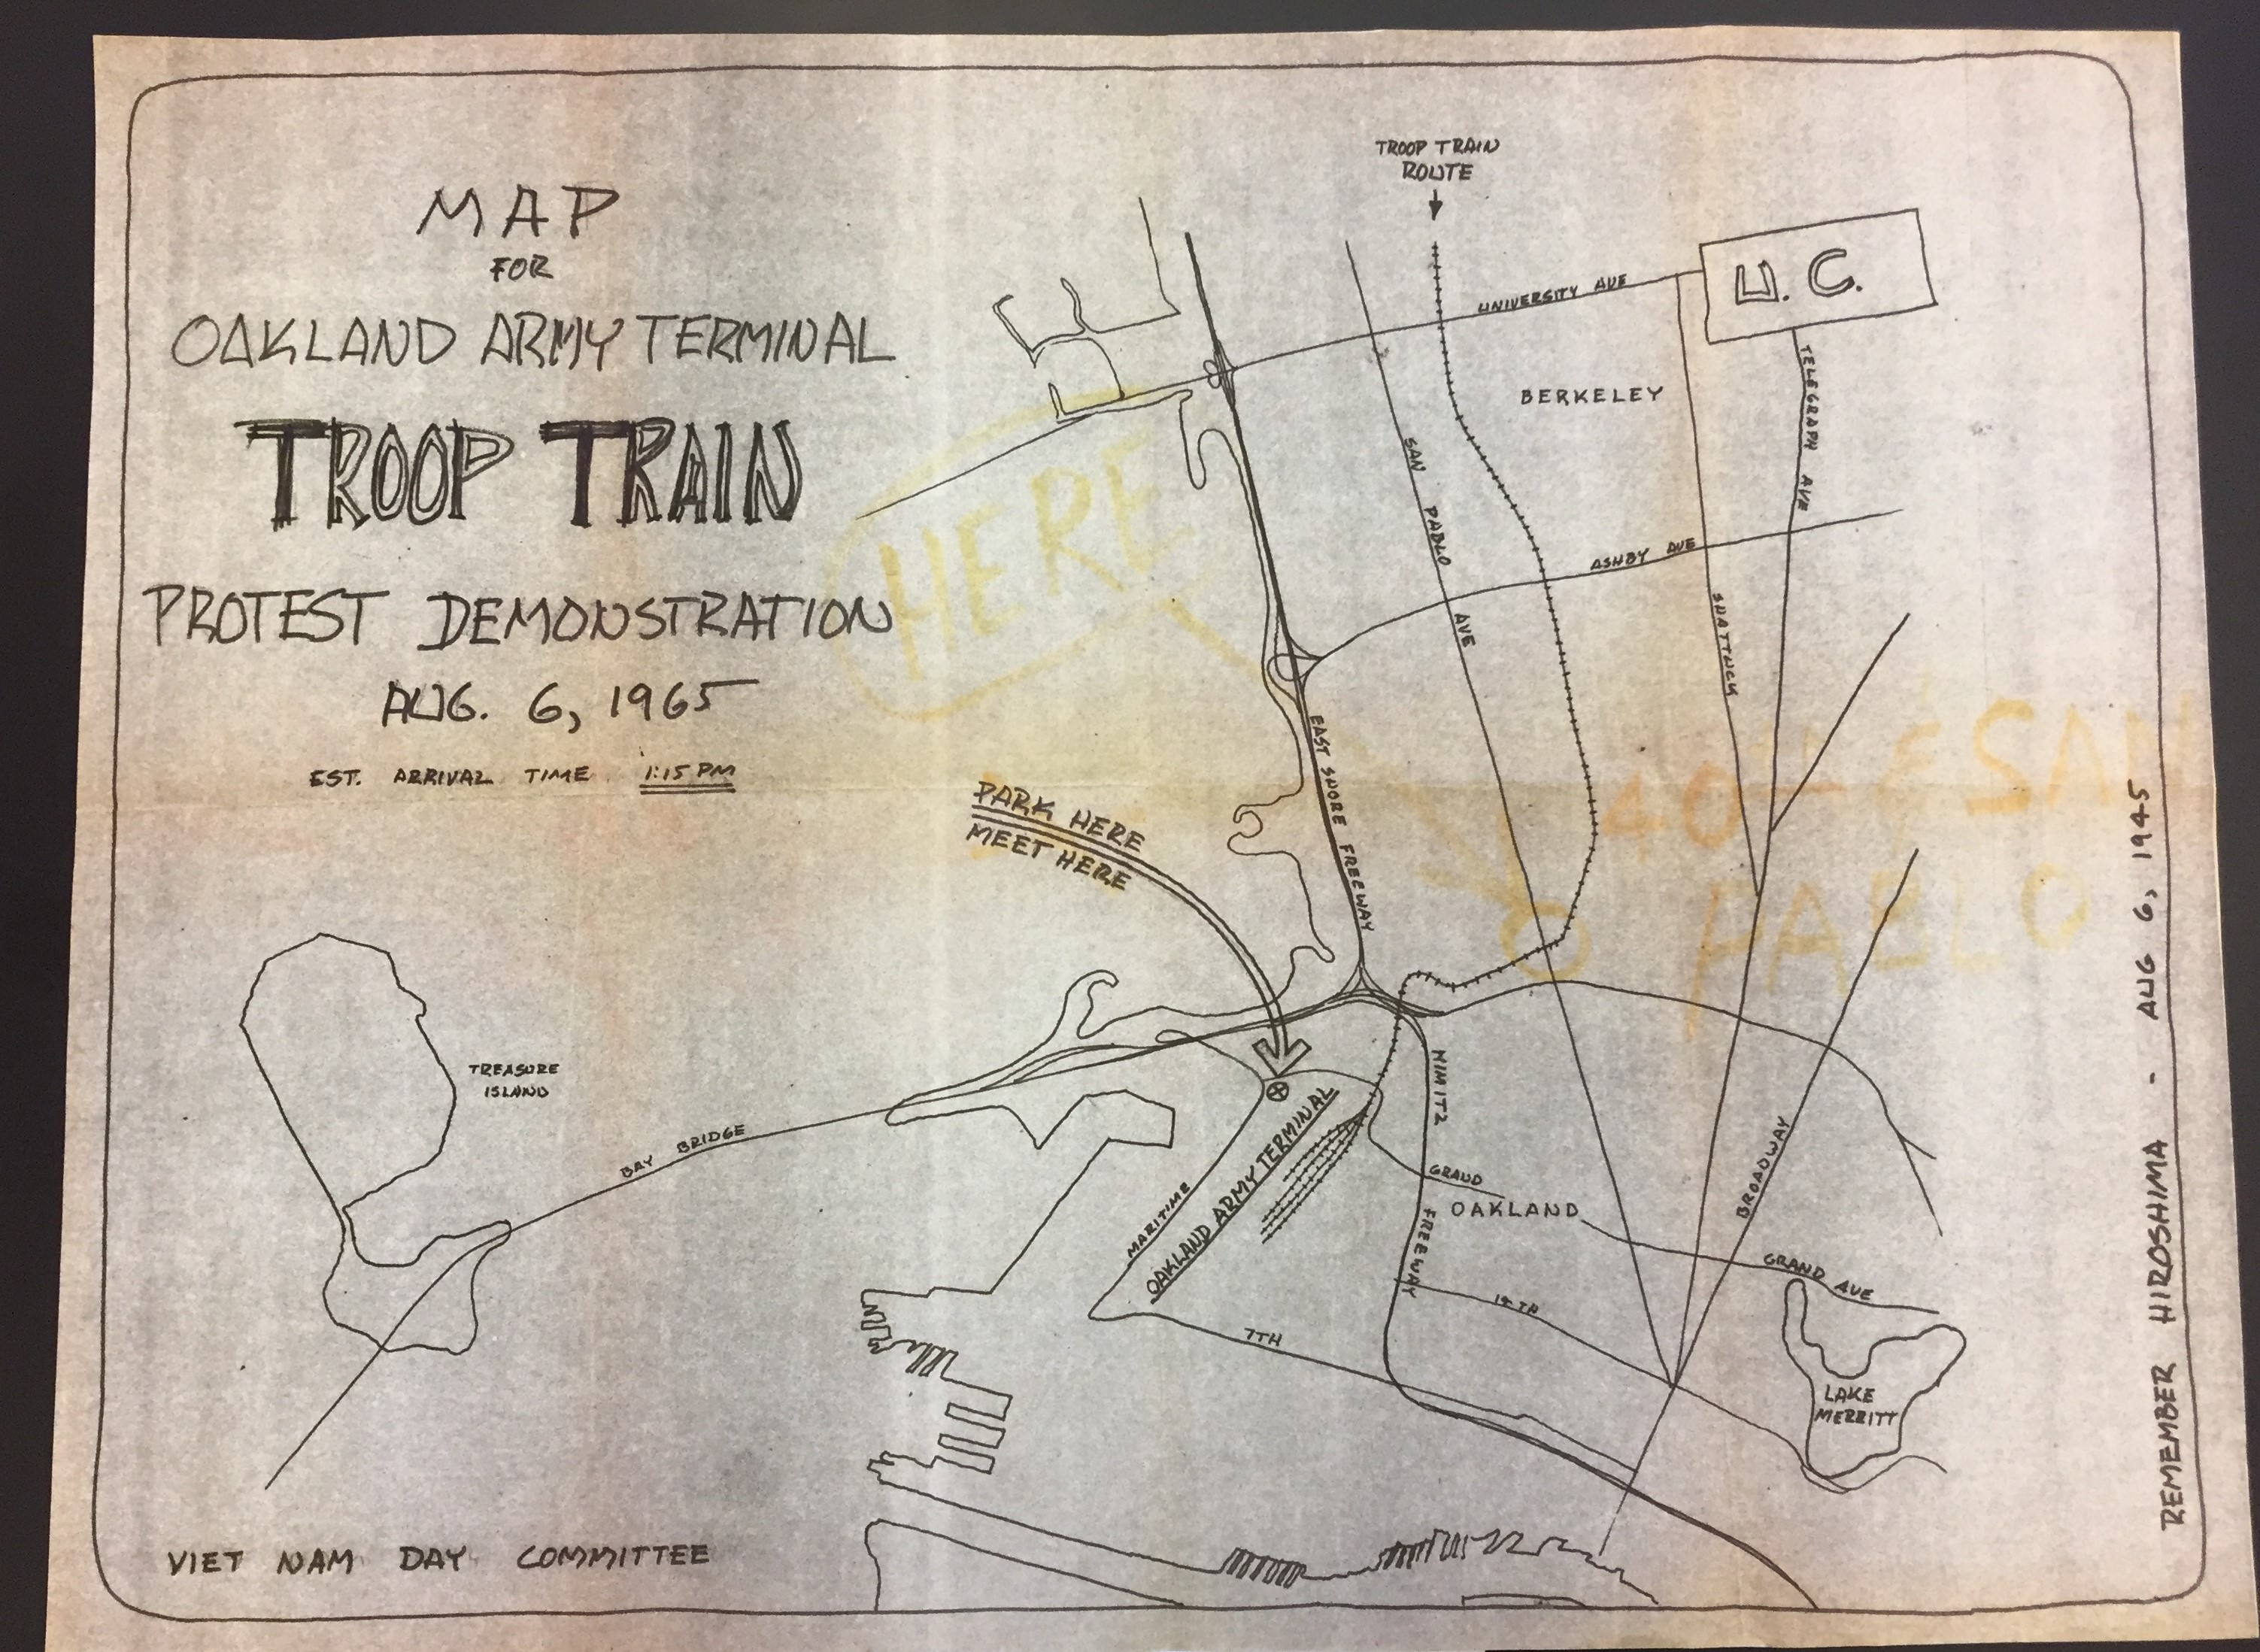 Map of Oakland Army Terminal for Troop Train Protests.JPG